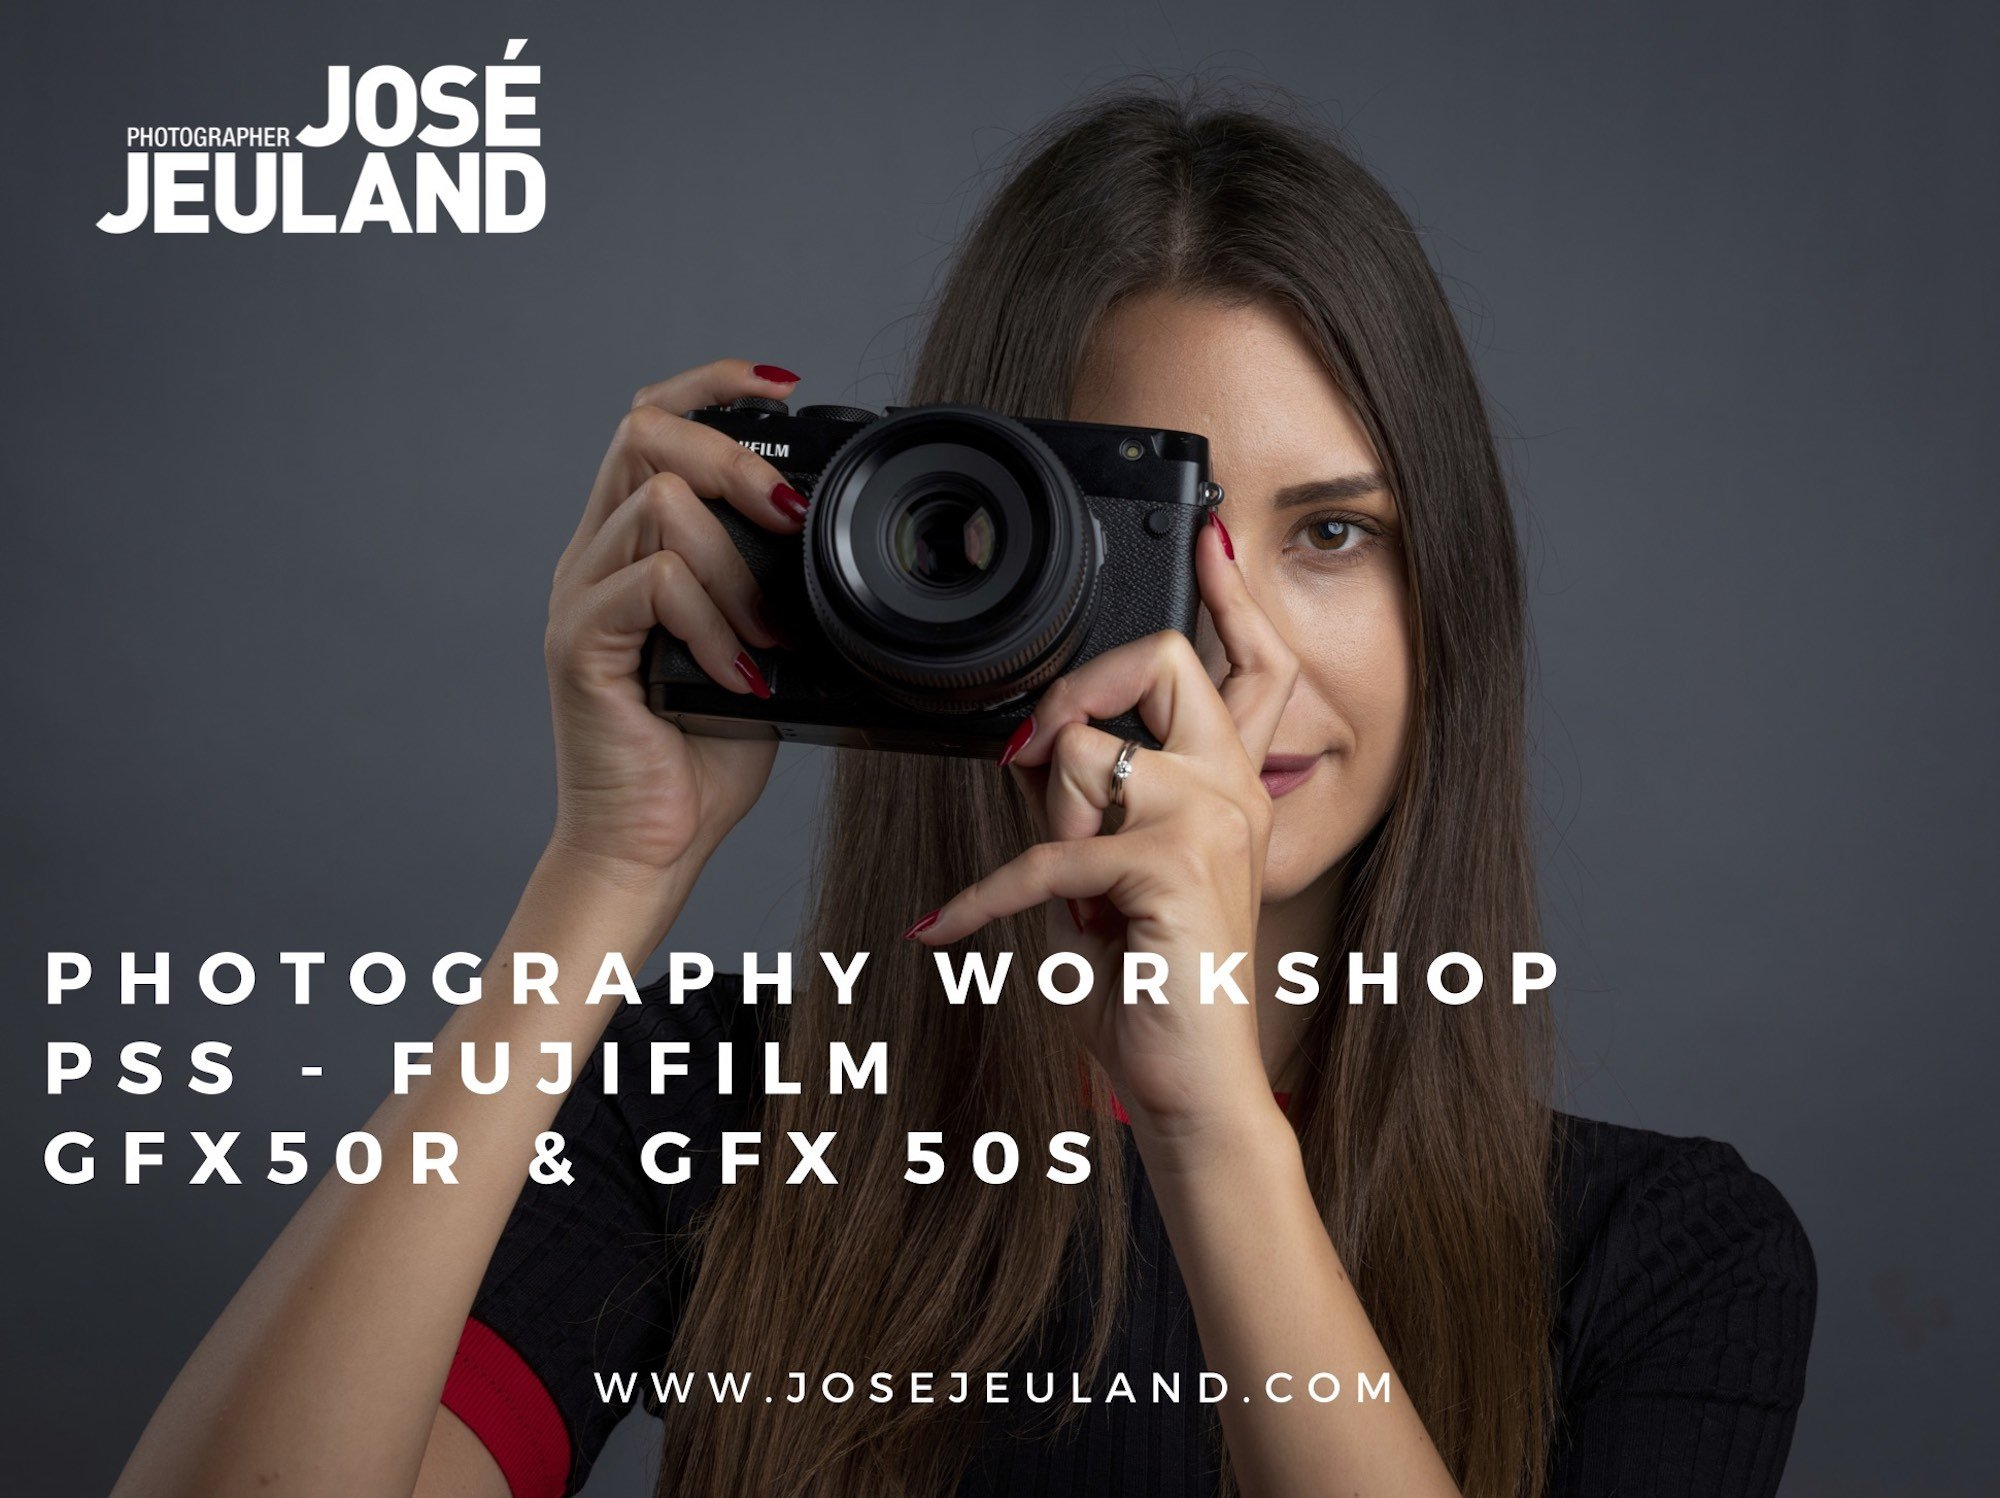 Photography Workshop PSS FUJIFILM GFX 50R GFX 50S Singapore Jose Jeuland Photographer studio shoot model